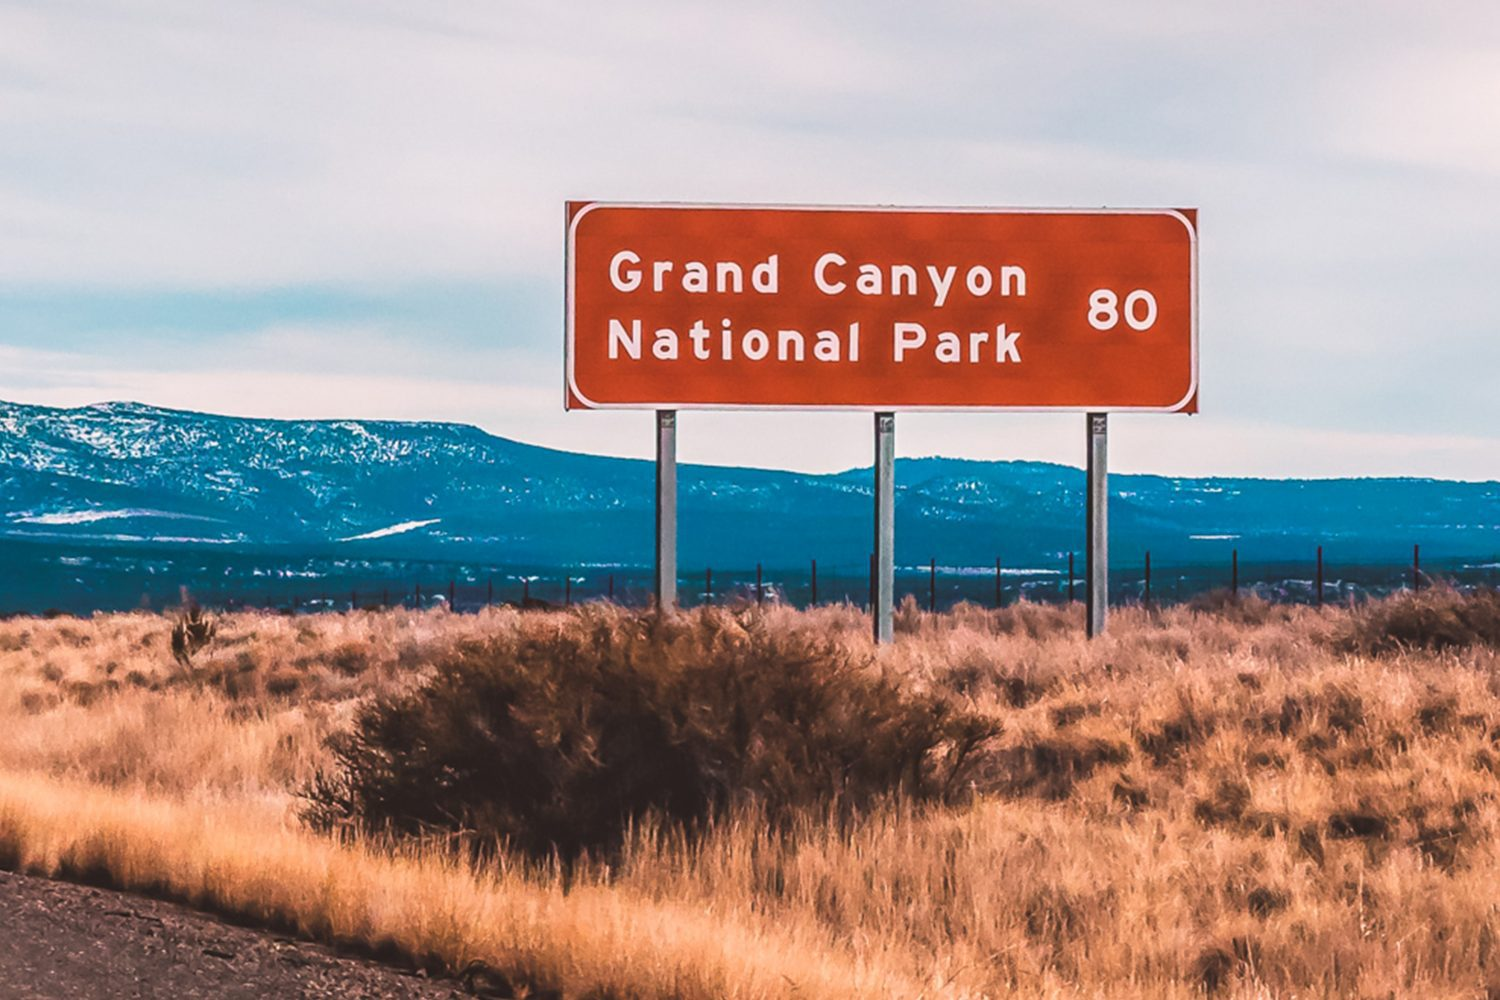 road sign noting that the grand canyon is 80 miles away